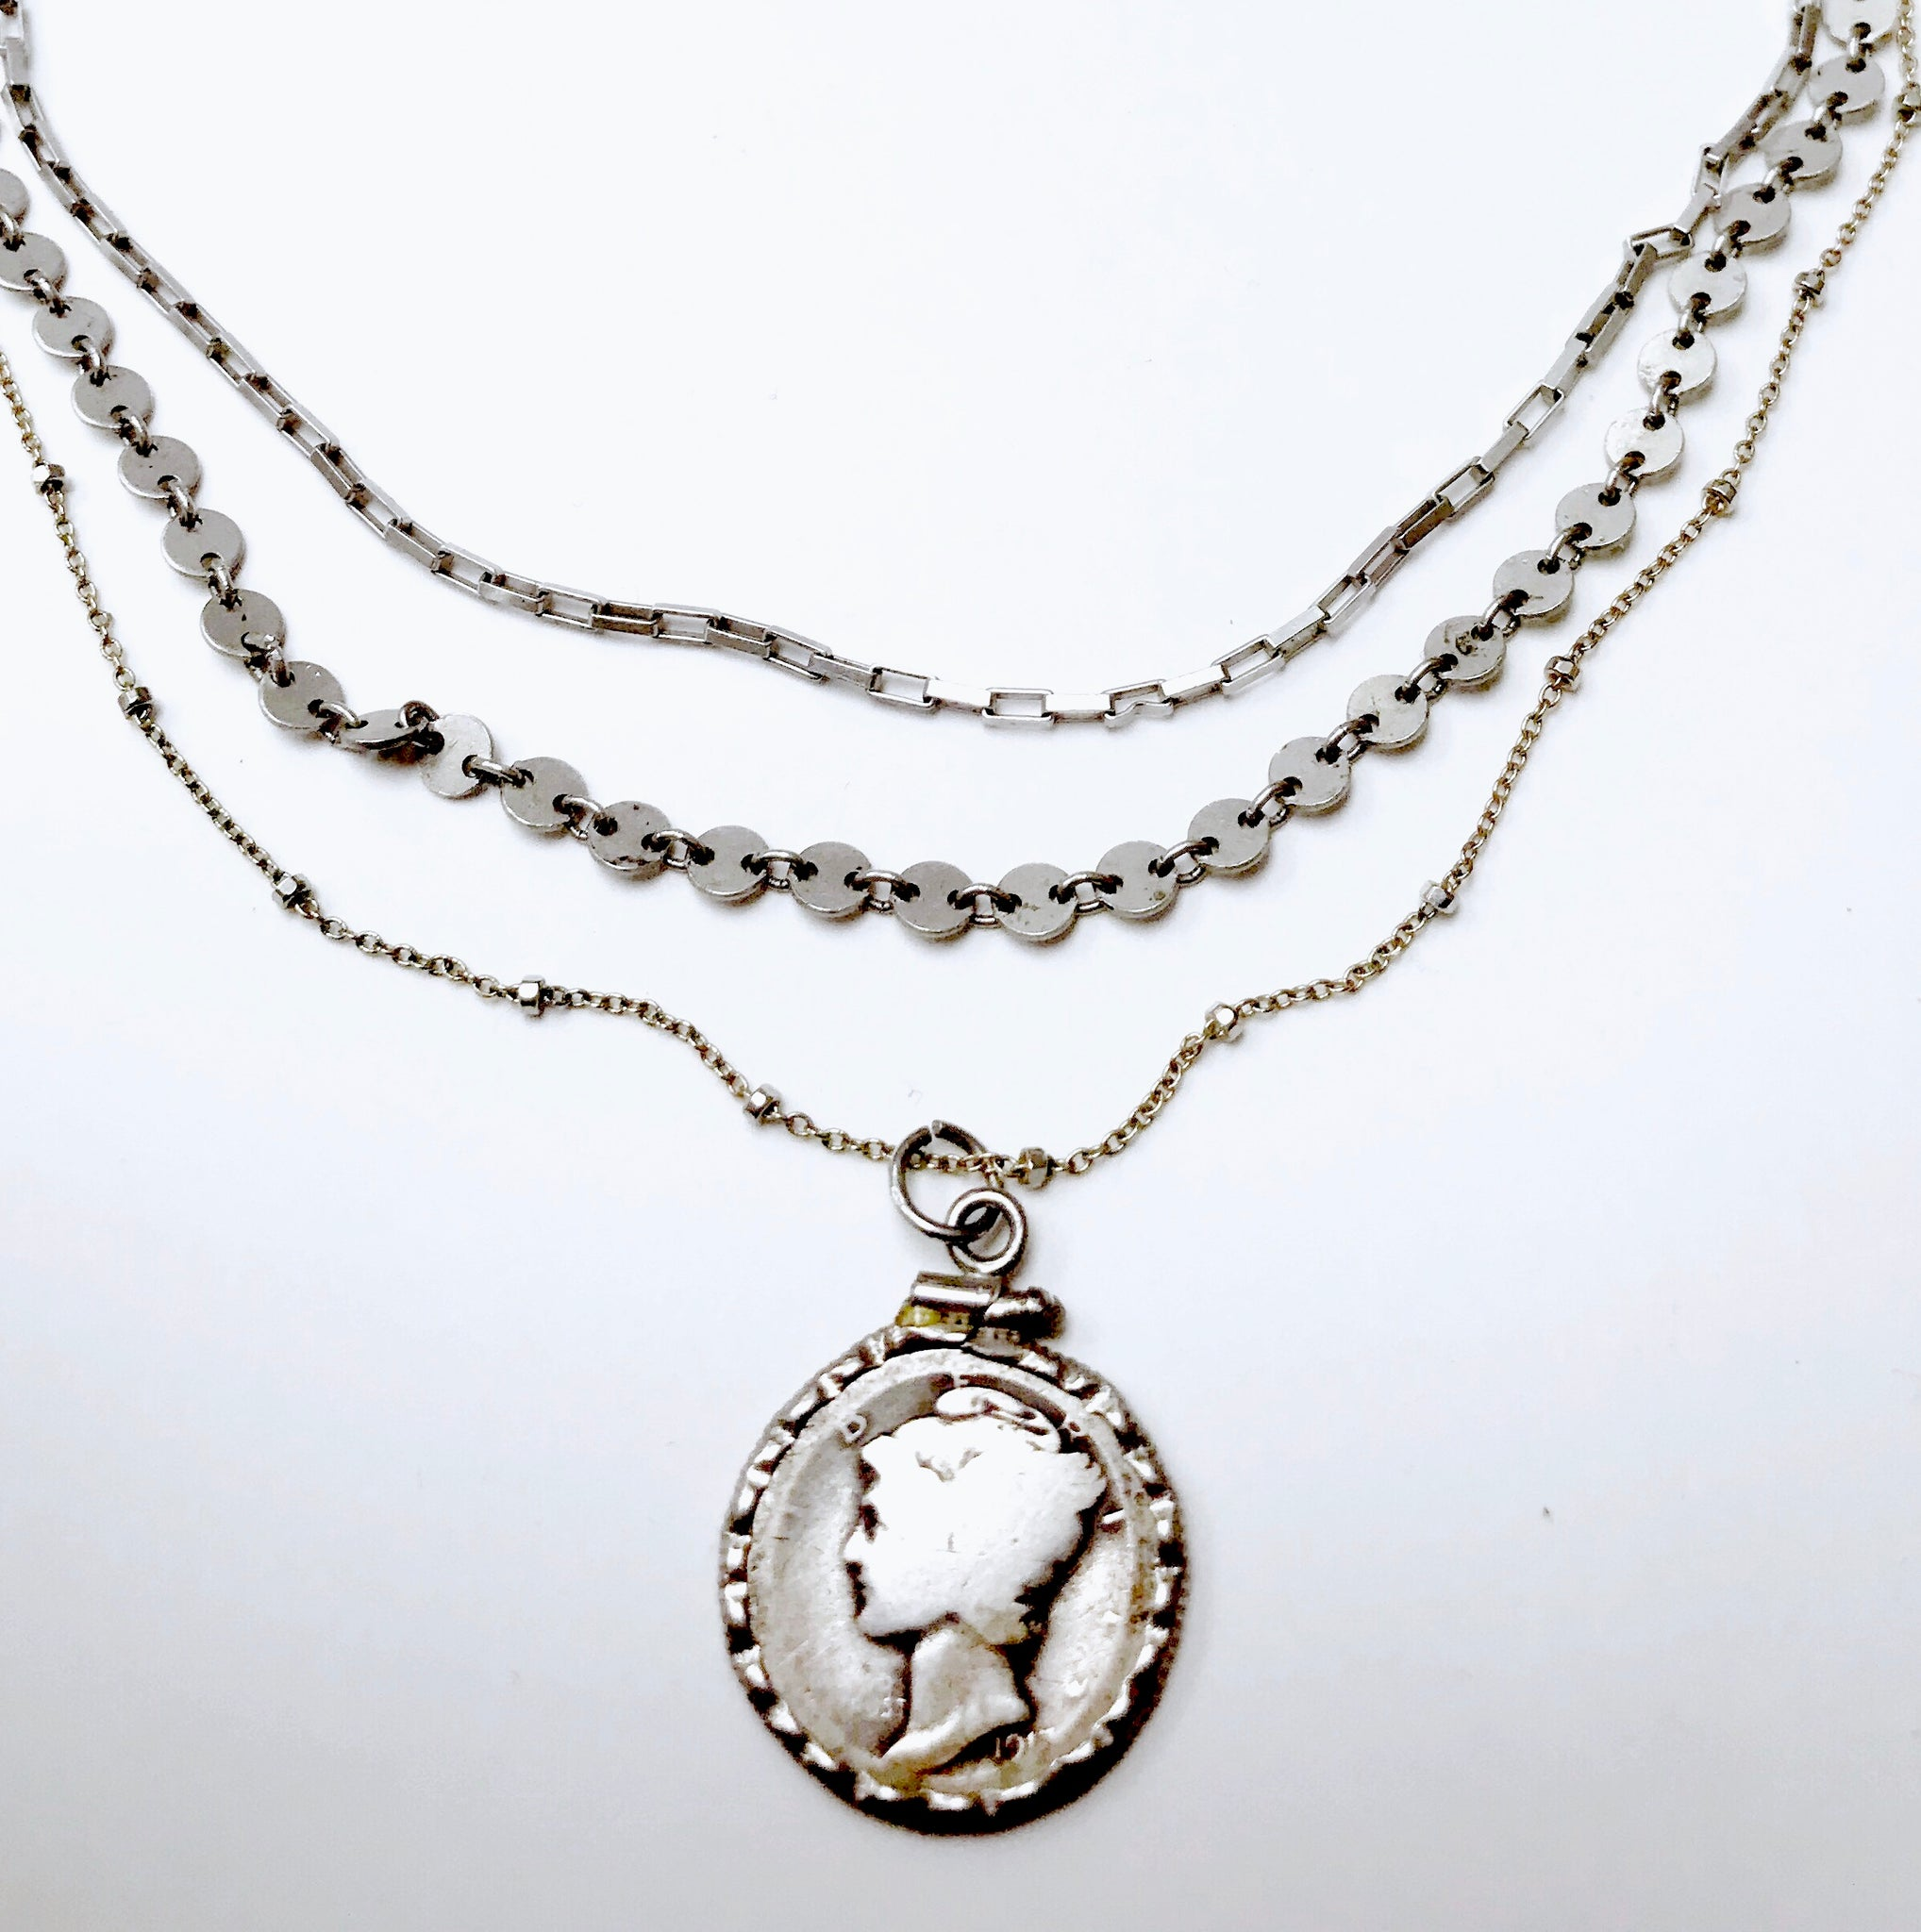 a buy necklace silver by klio mum coin mun designers at joma marvellous jewellery